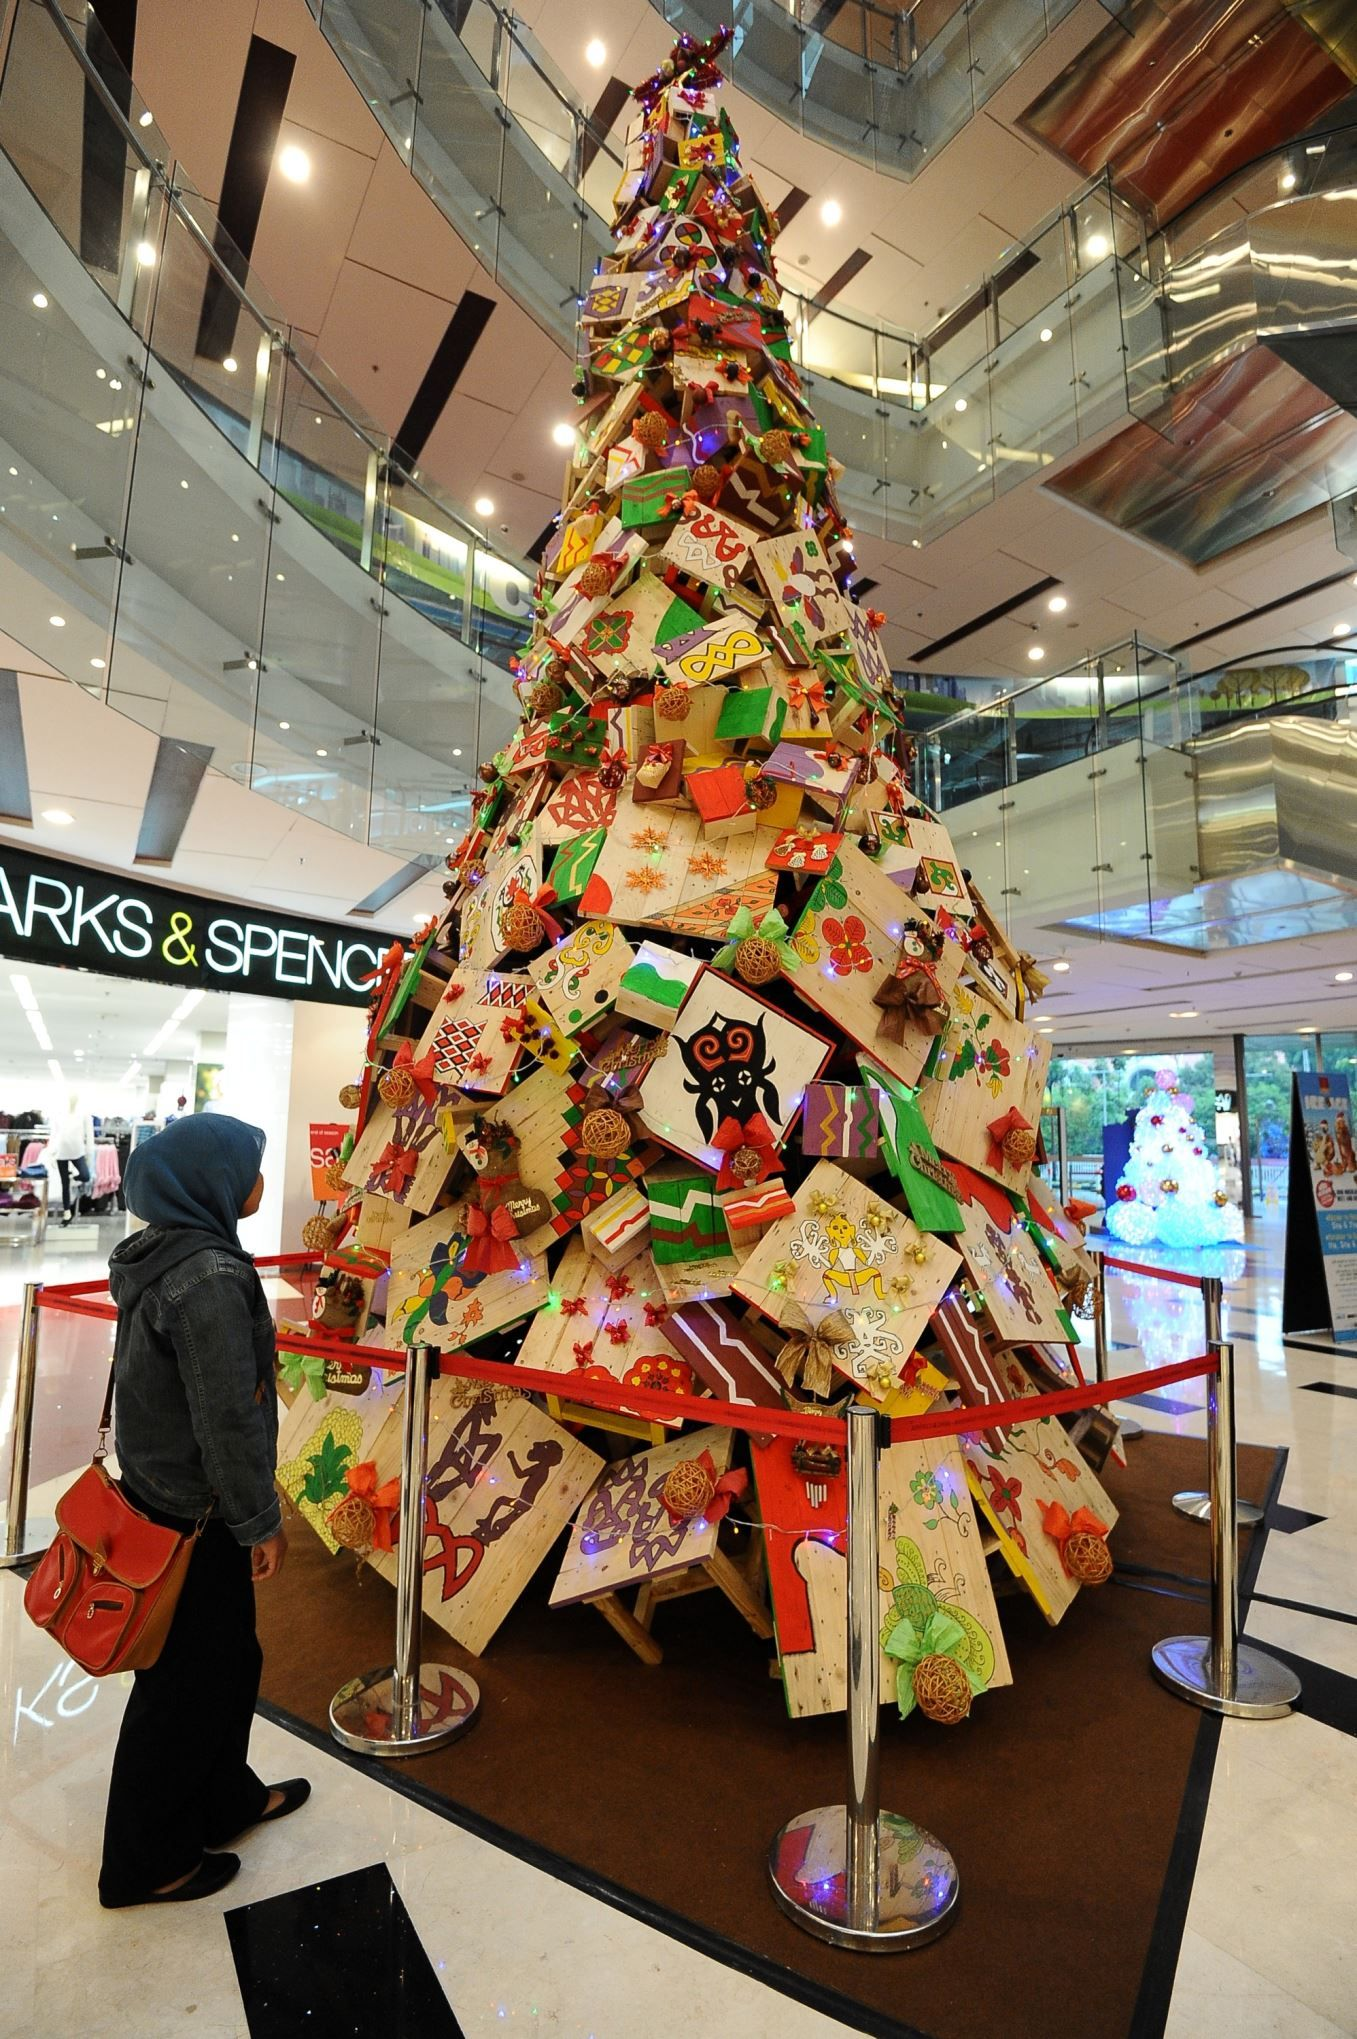 The Worlds Best Christmas Trees Surabaya, Indonesia A Giant Christmas Tree